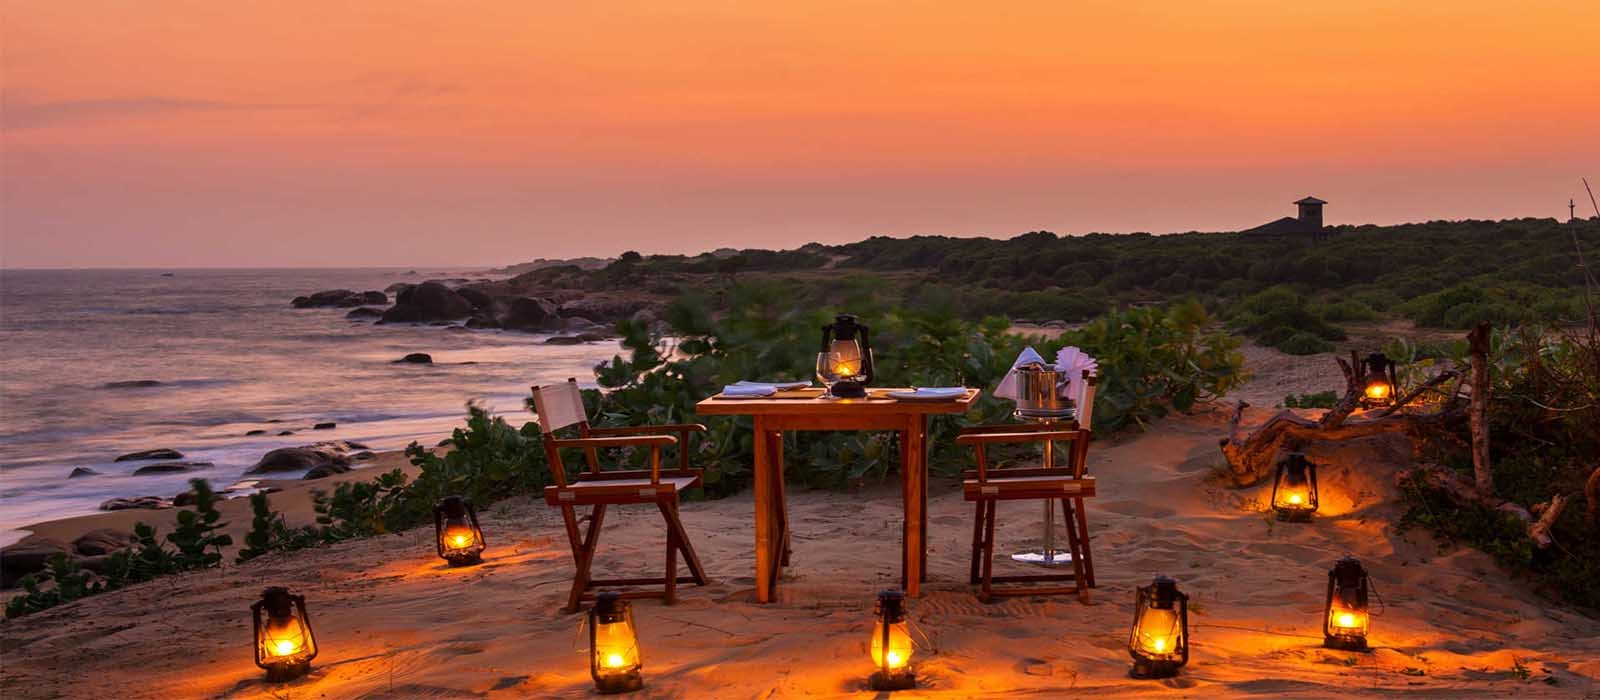 Uga Chena Huts Yala - Luxury Sri Lanka Holiday packages - Header